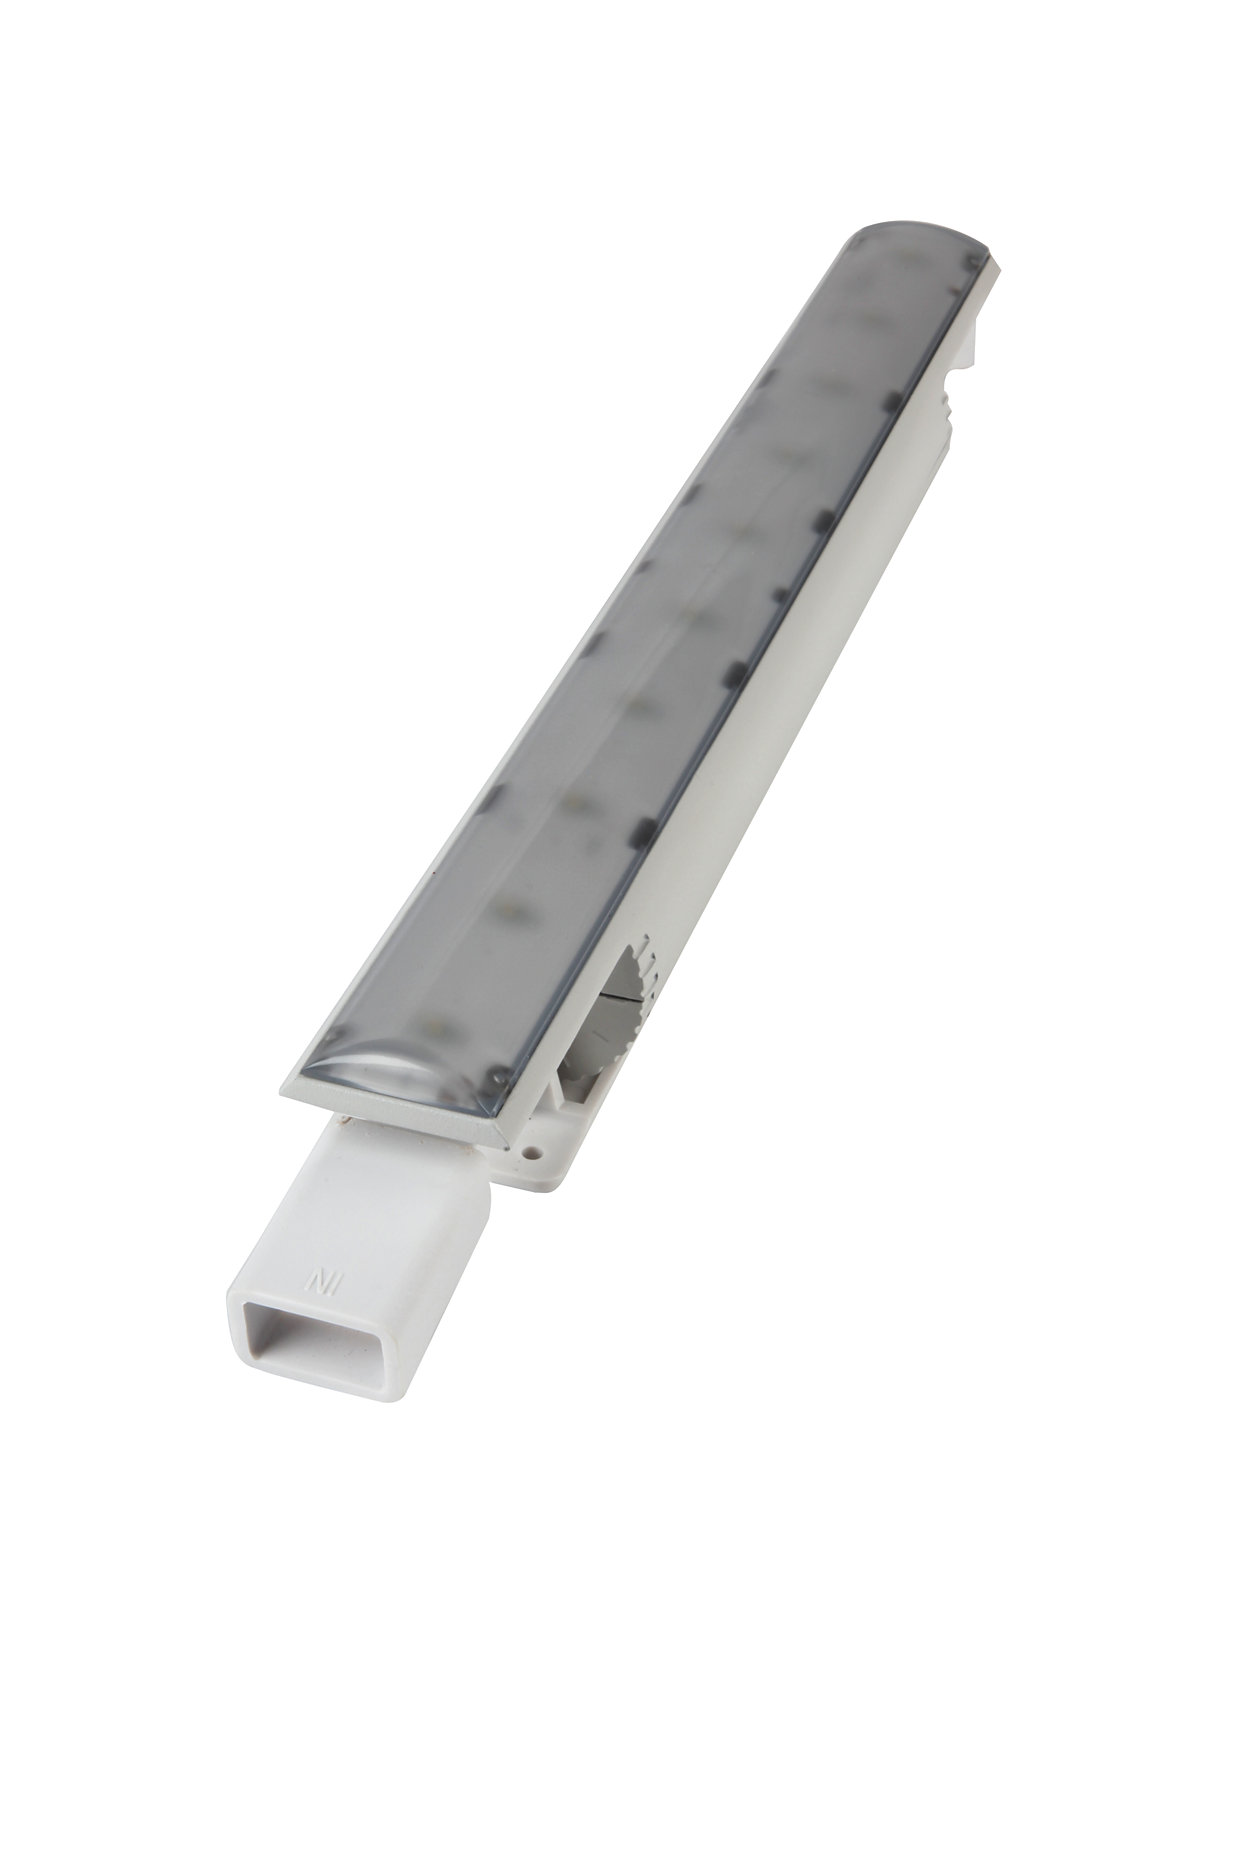 eW Cove MX Powercore – maximum-output linear LED fixture for cove, general and accent lighting